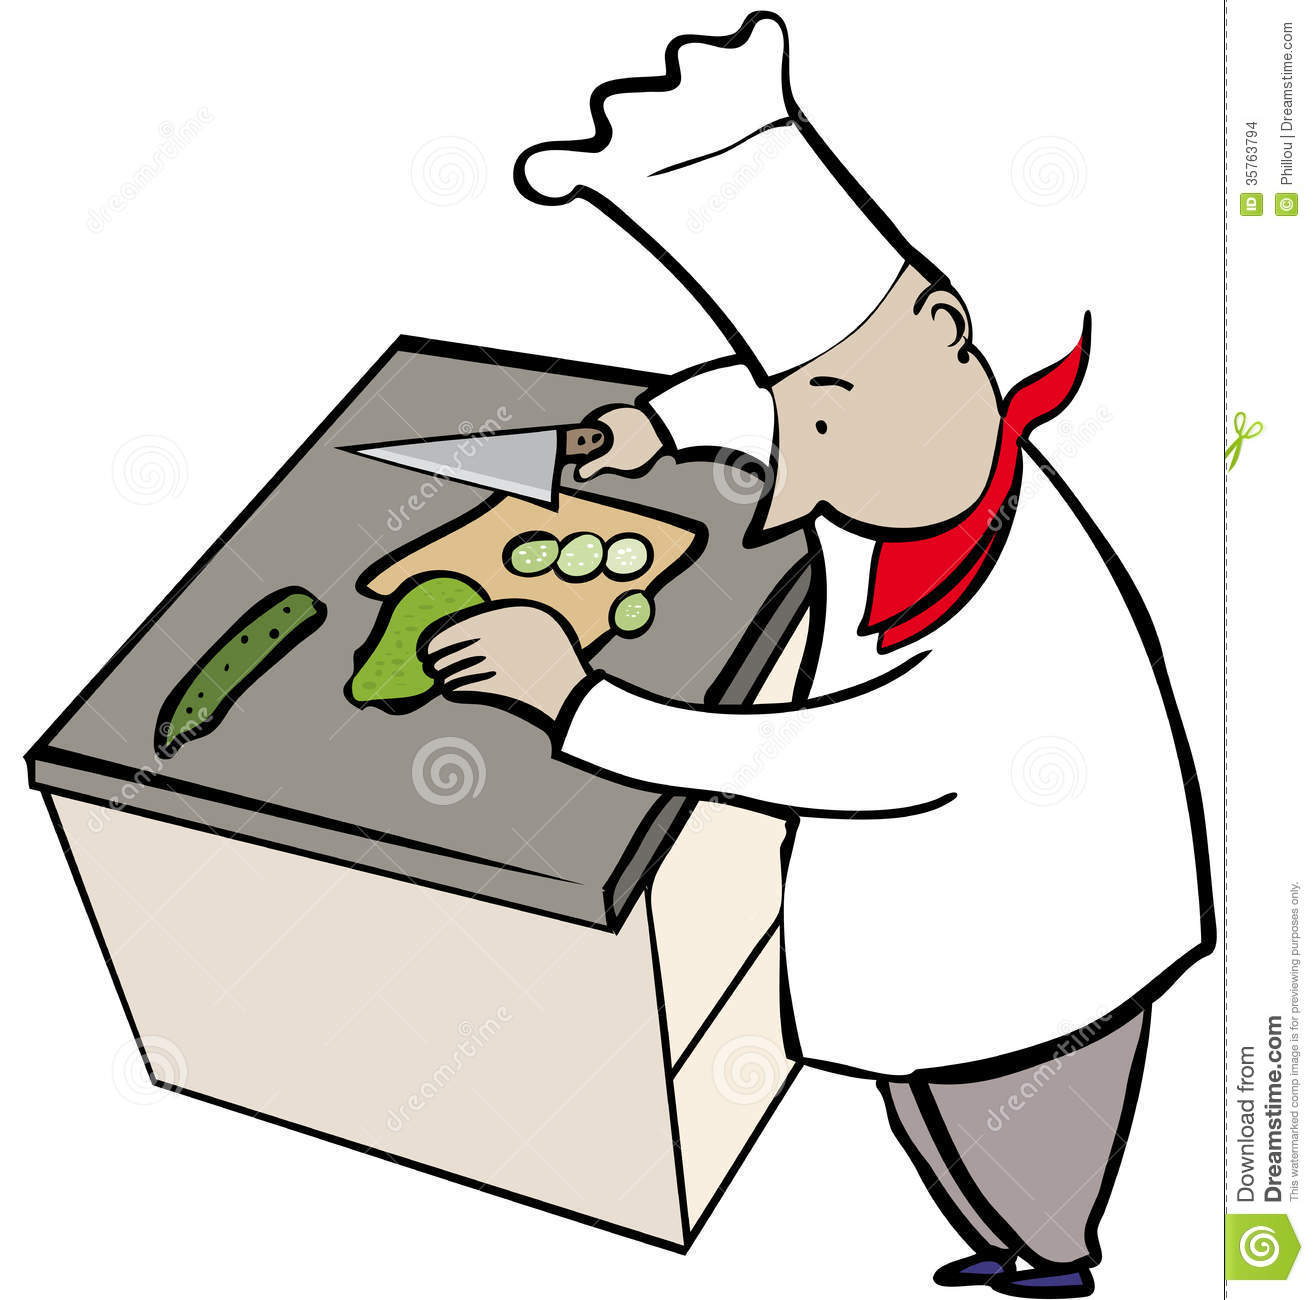 Chef Chopping Stock Images - Image: 35763794